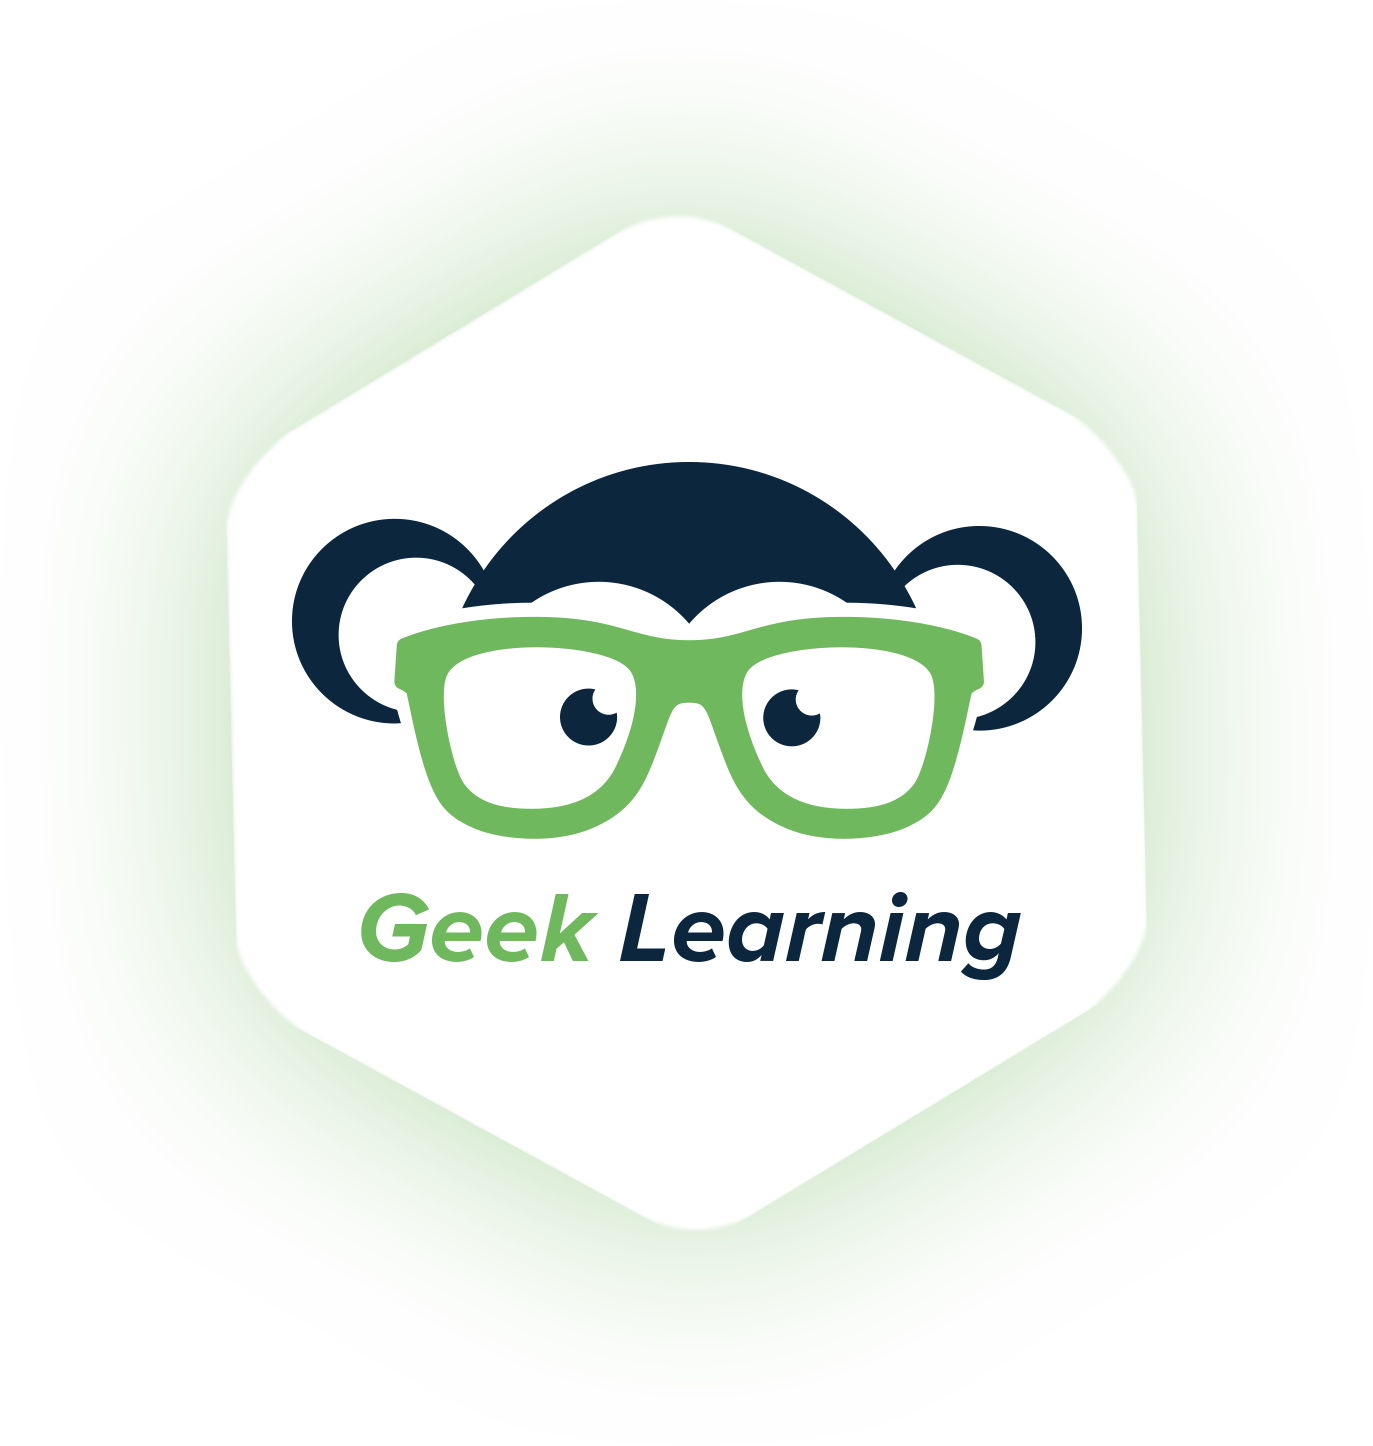 Geek Learning